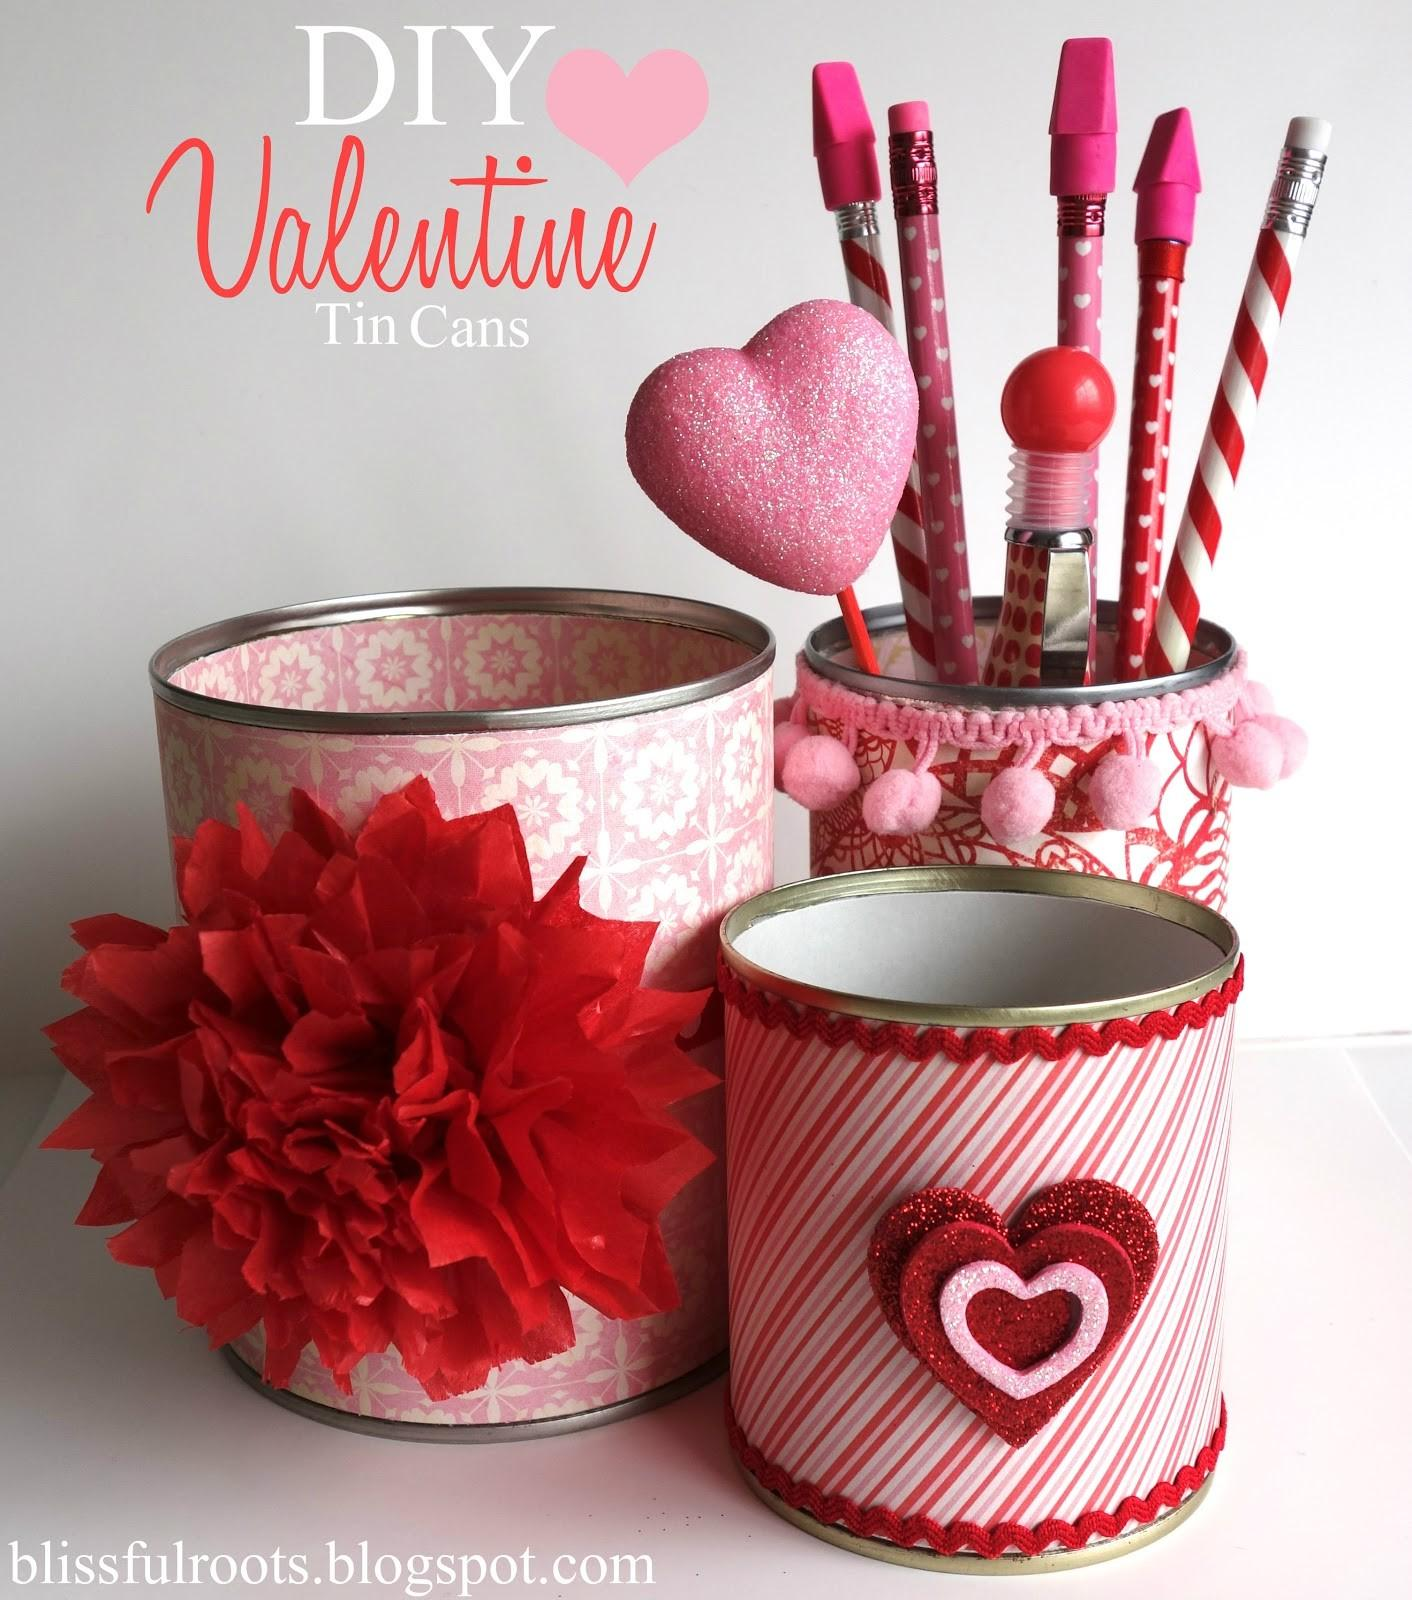 Blissful Roots Diy Valentine Tin Cans